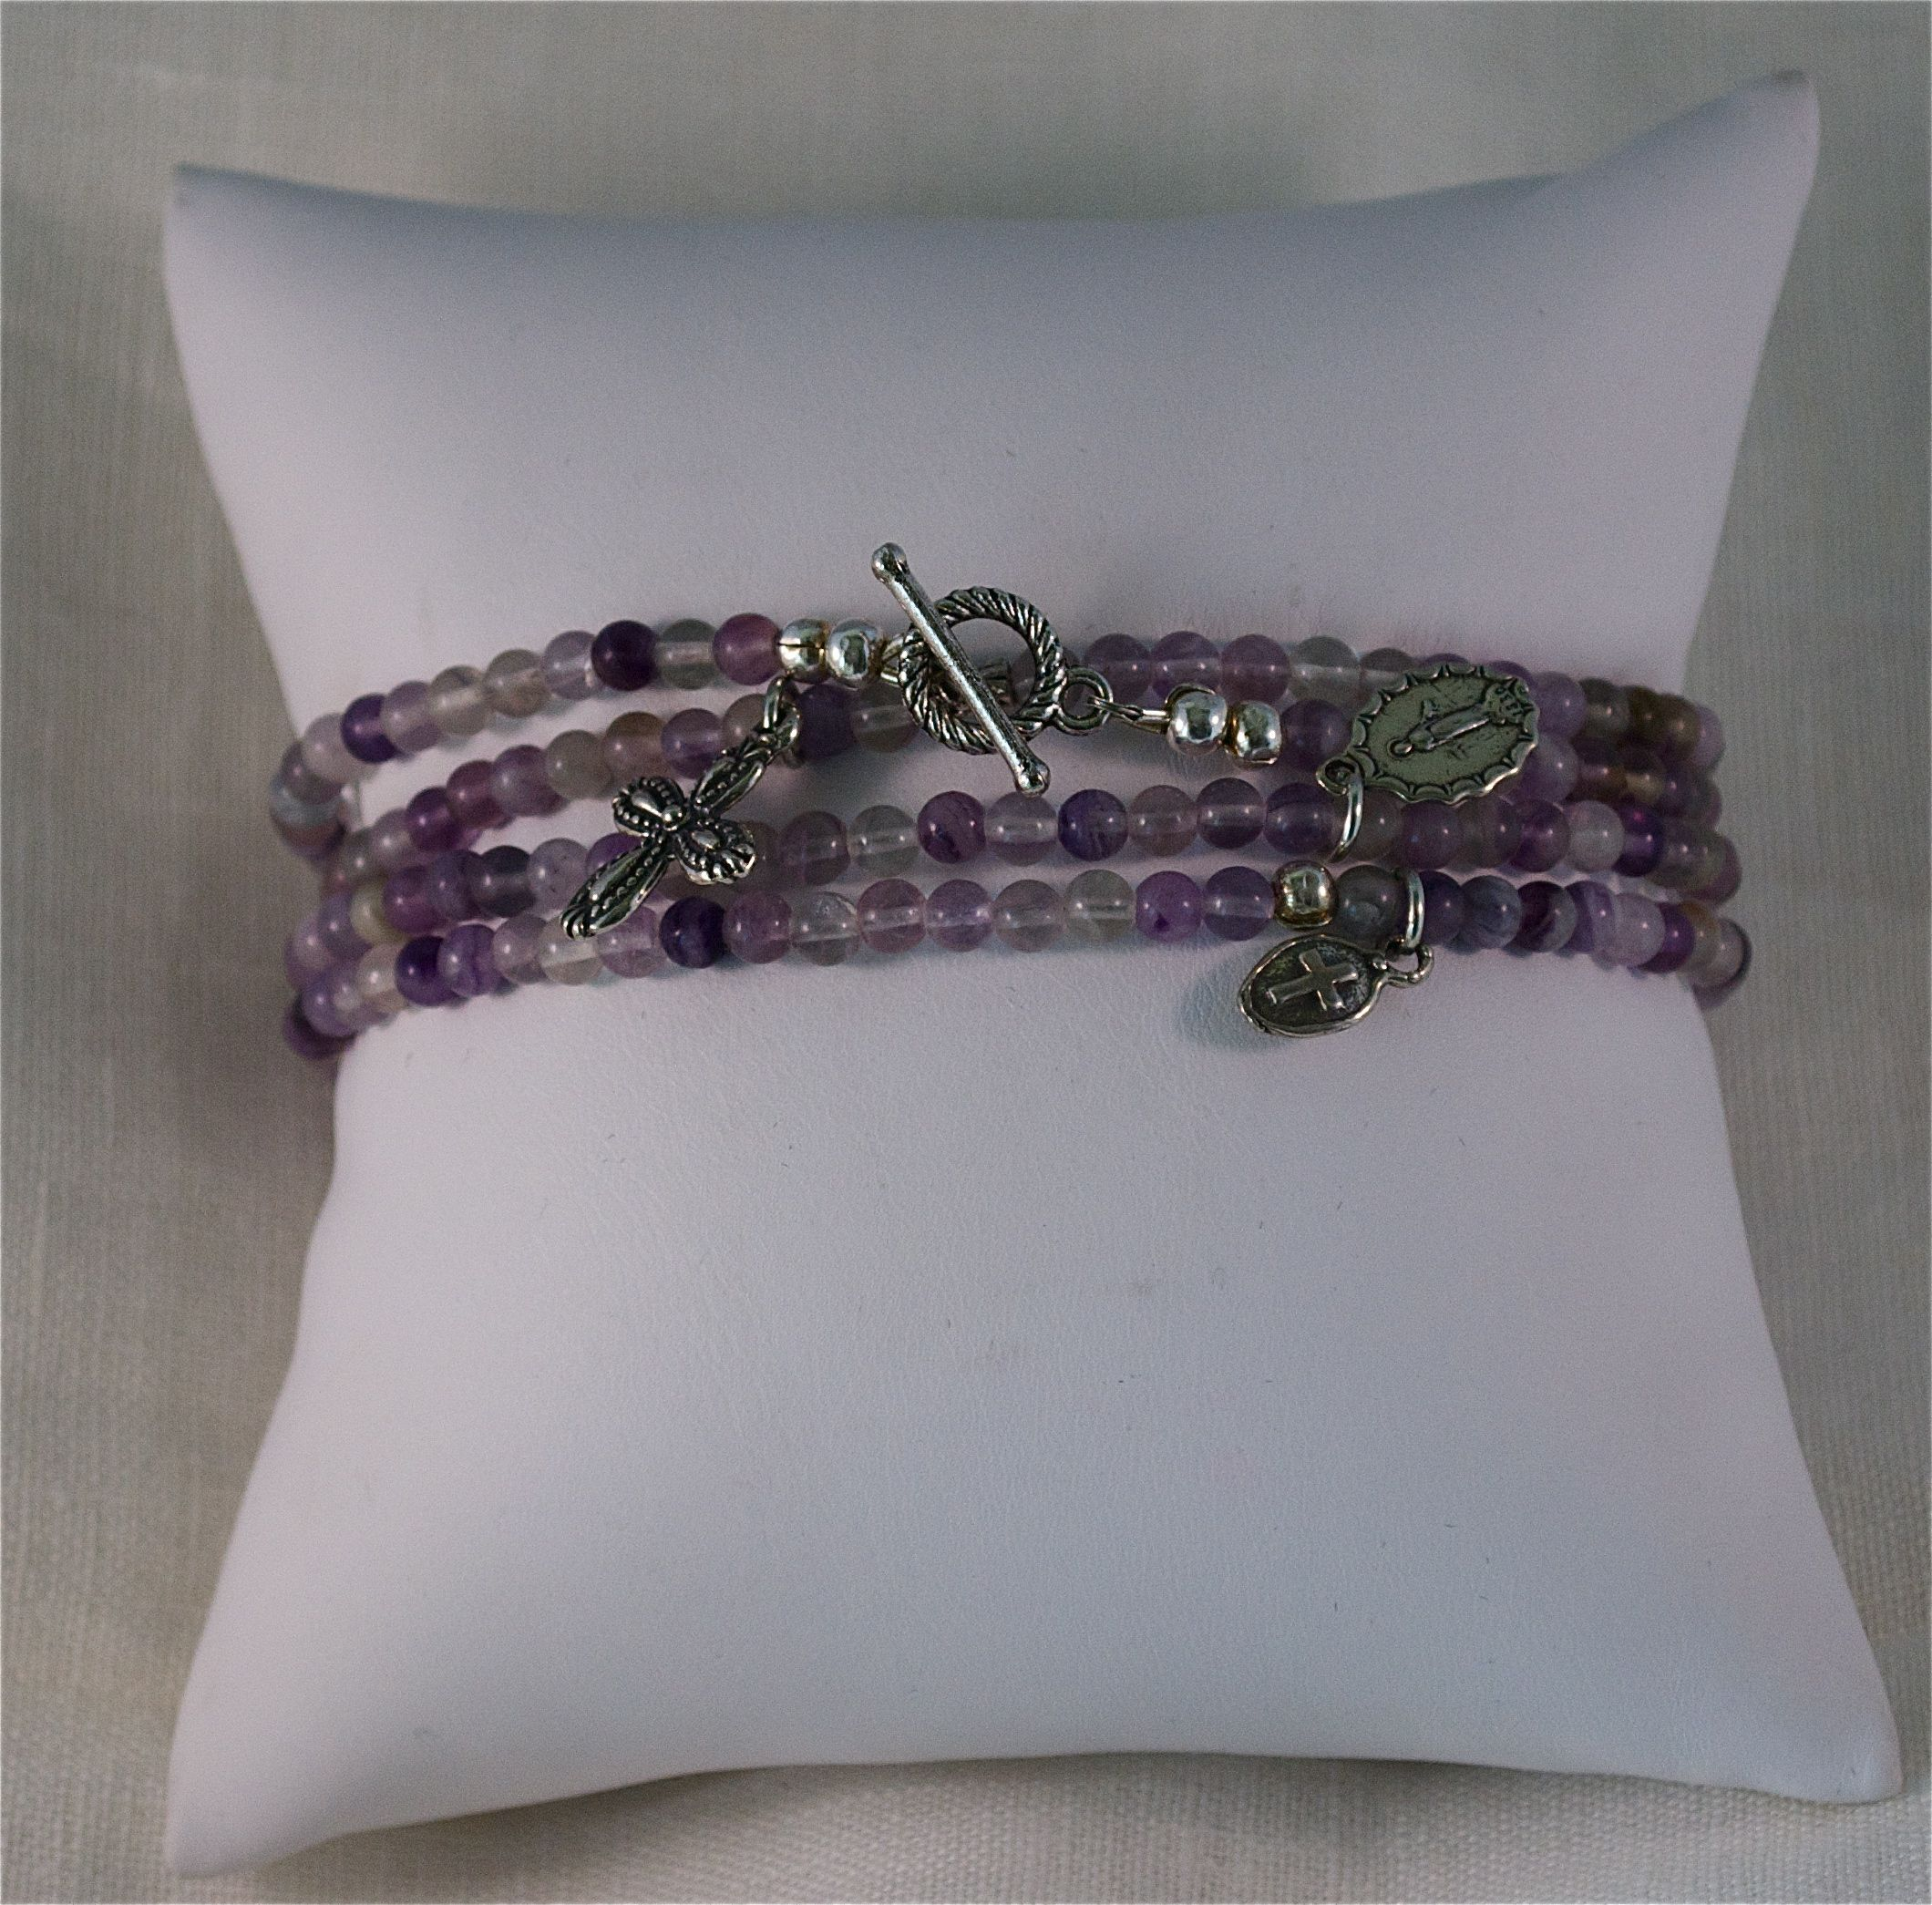 WrapAround Bracelet  5mm Amethist Beads w/Sterling Silver Pendants and Clasp.  Can also be worn as a necklace.